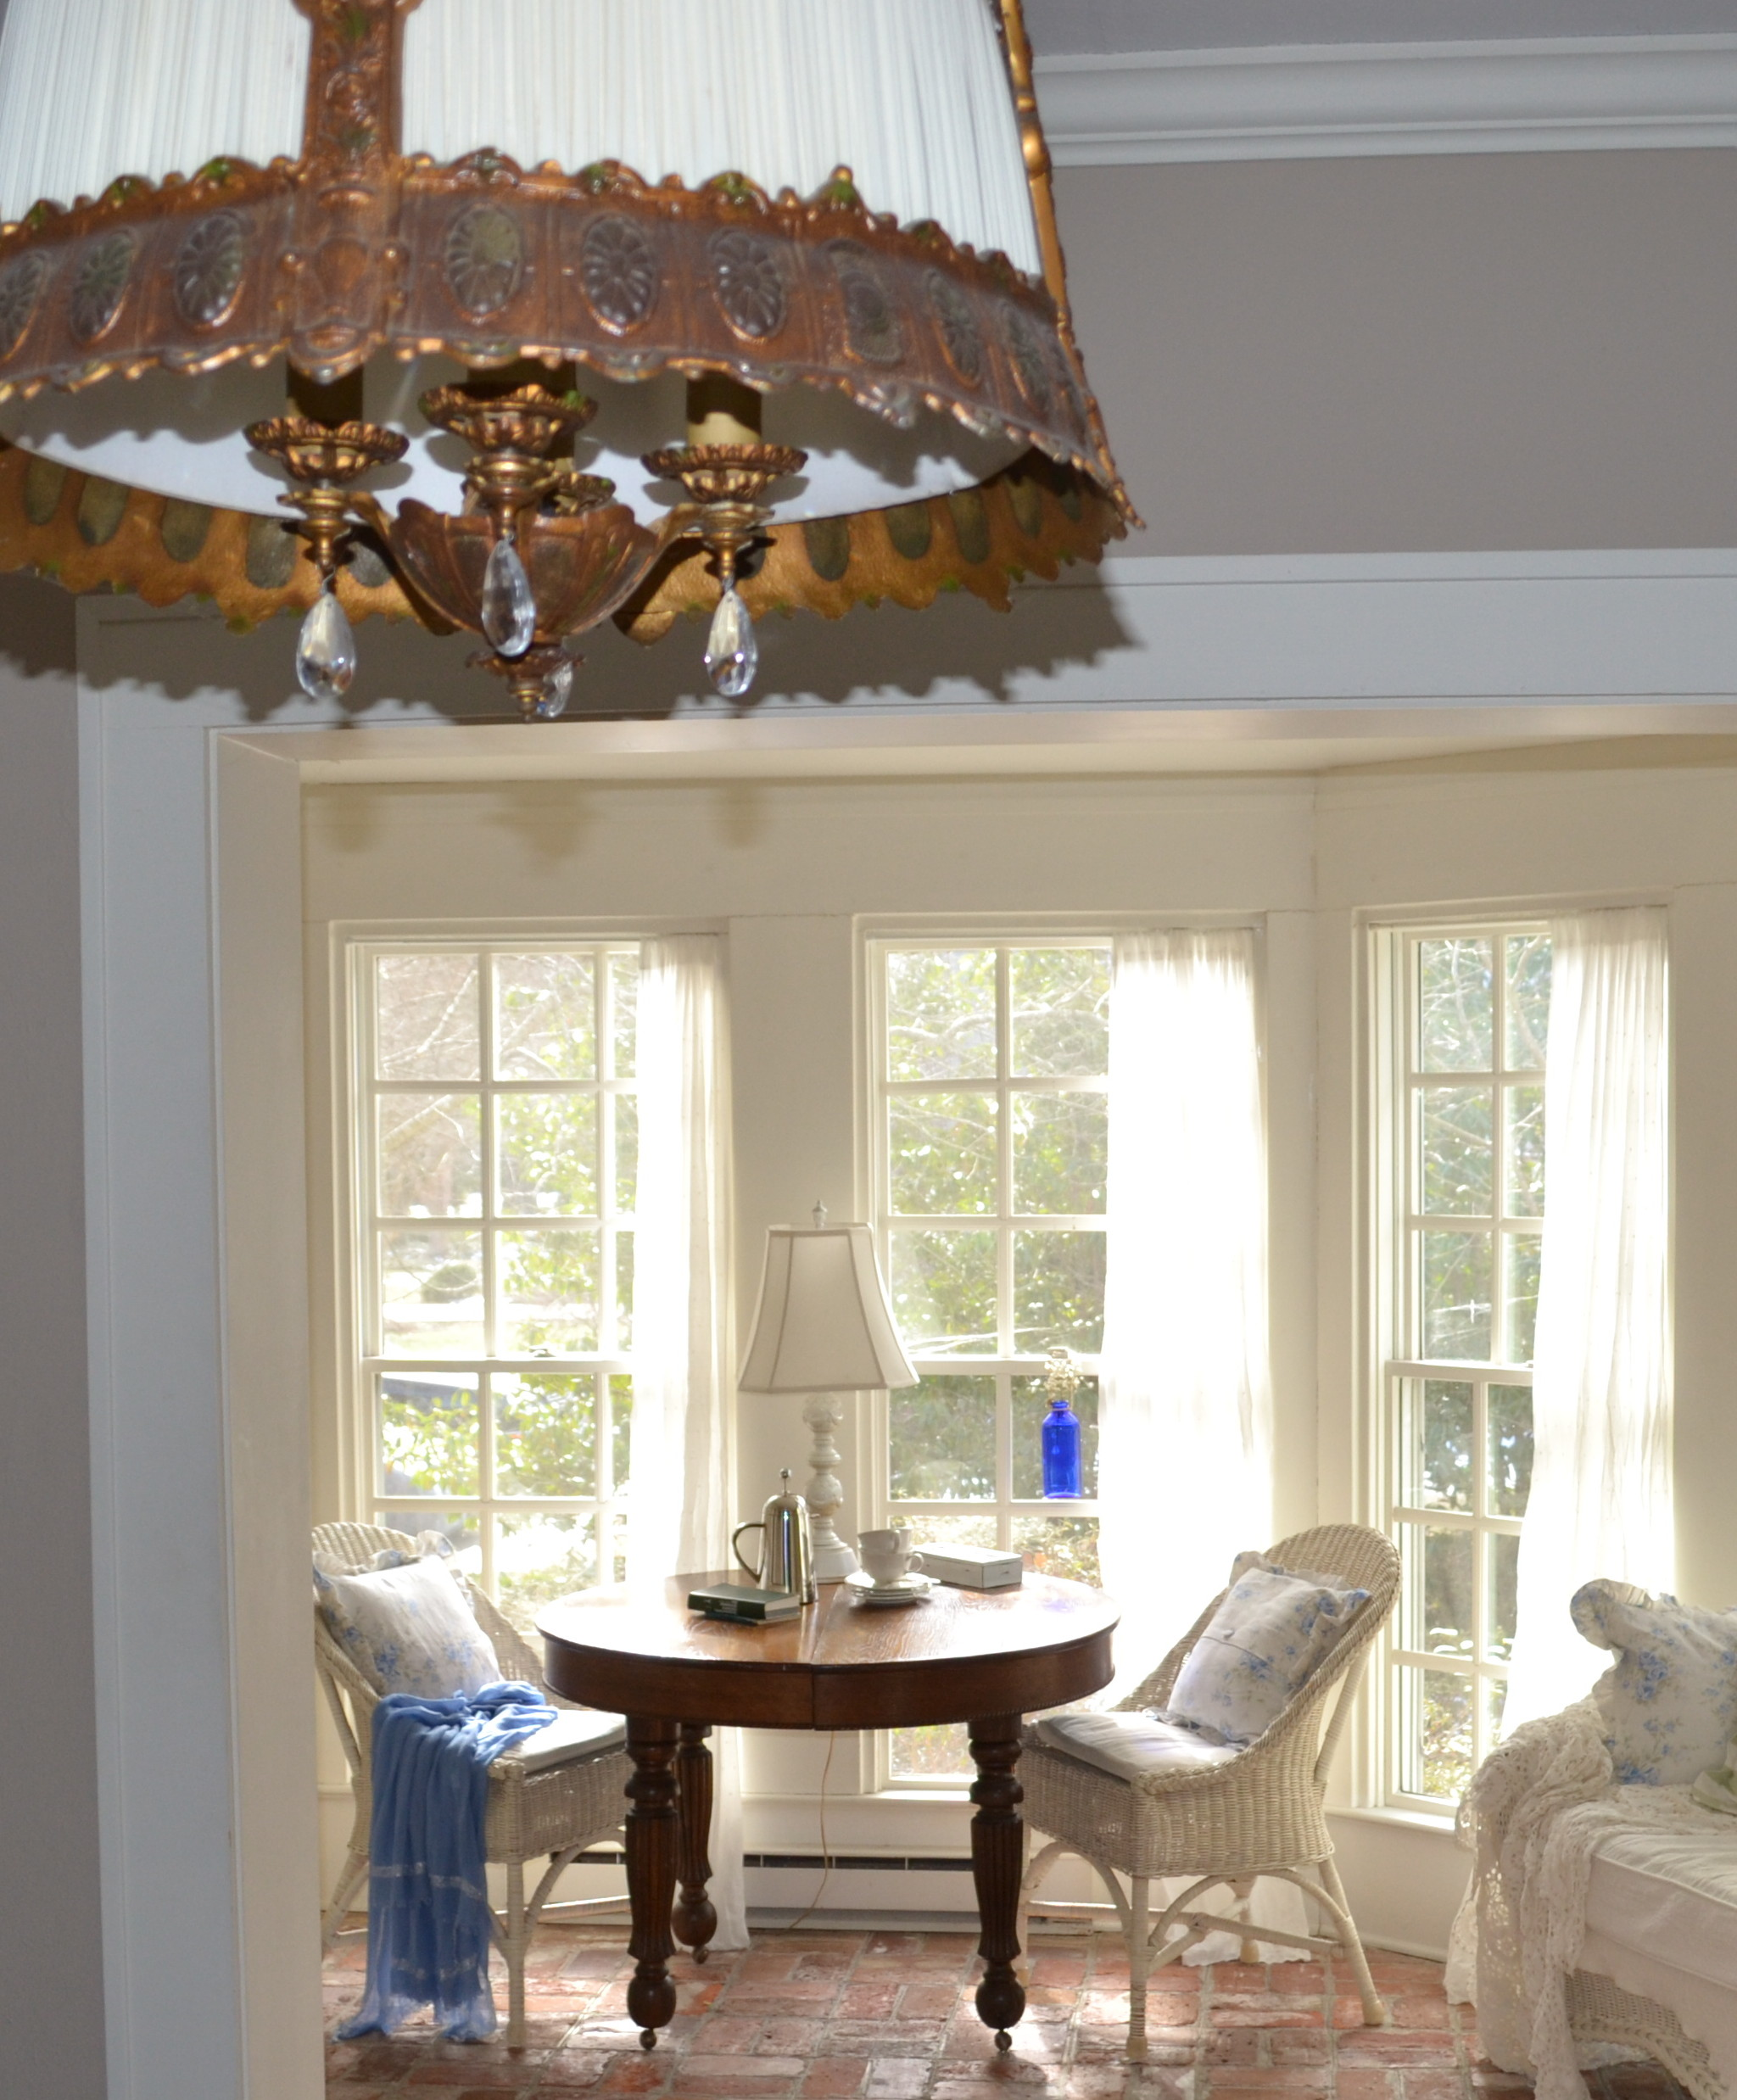 wicker chairs move to the sunroom